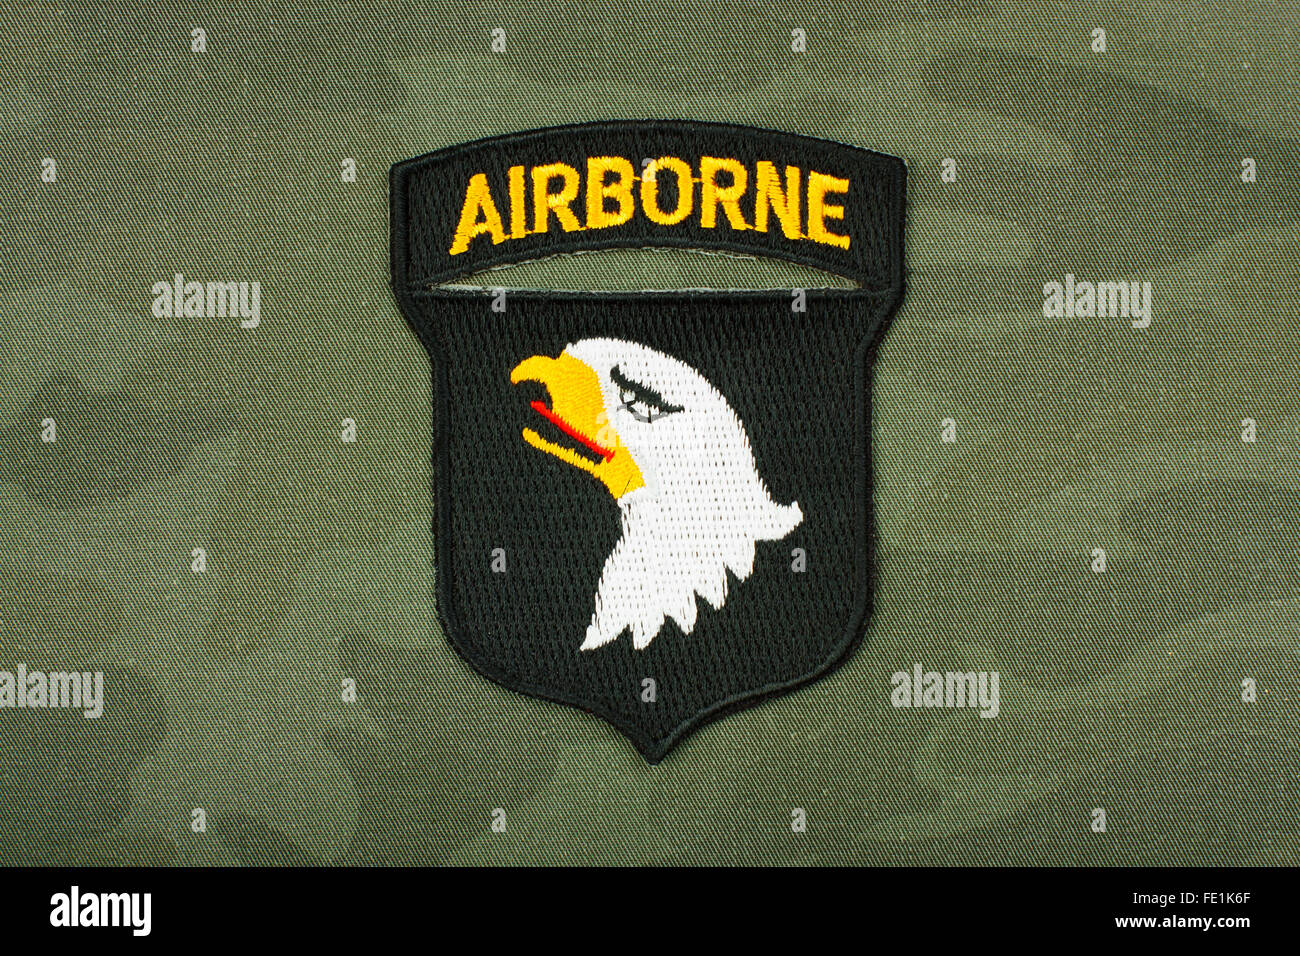 World War 2 -  insignia US Army 101st Airborne Division on reconstruction group uniform. - Stock Image